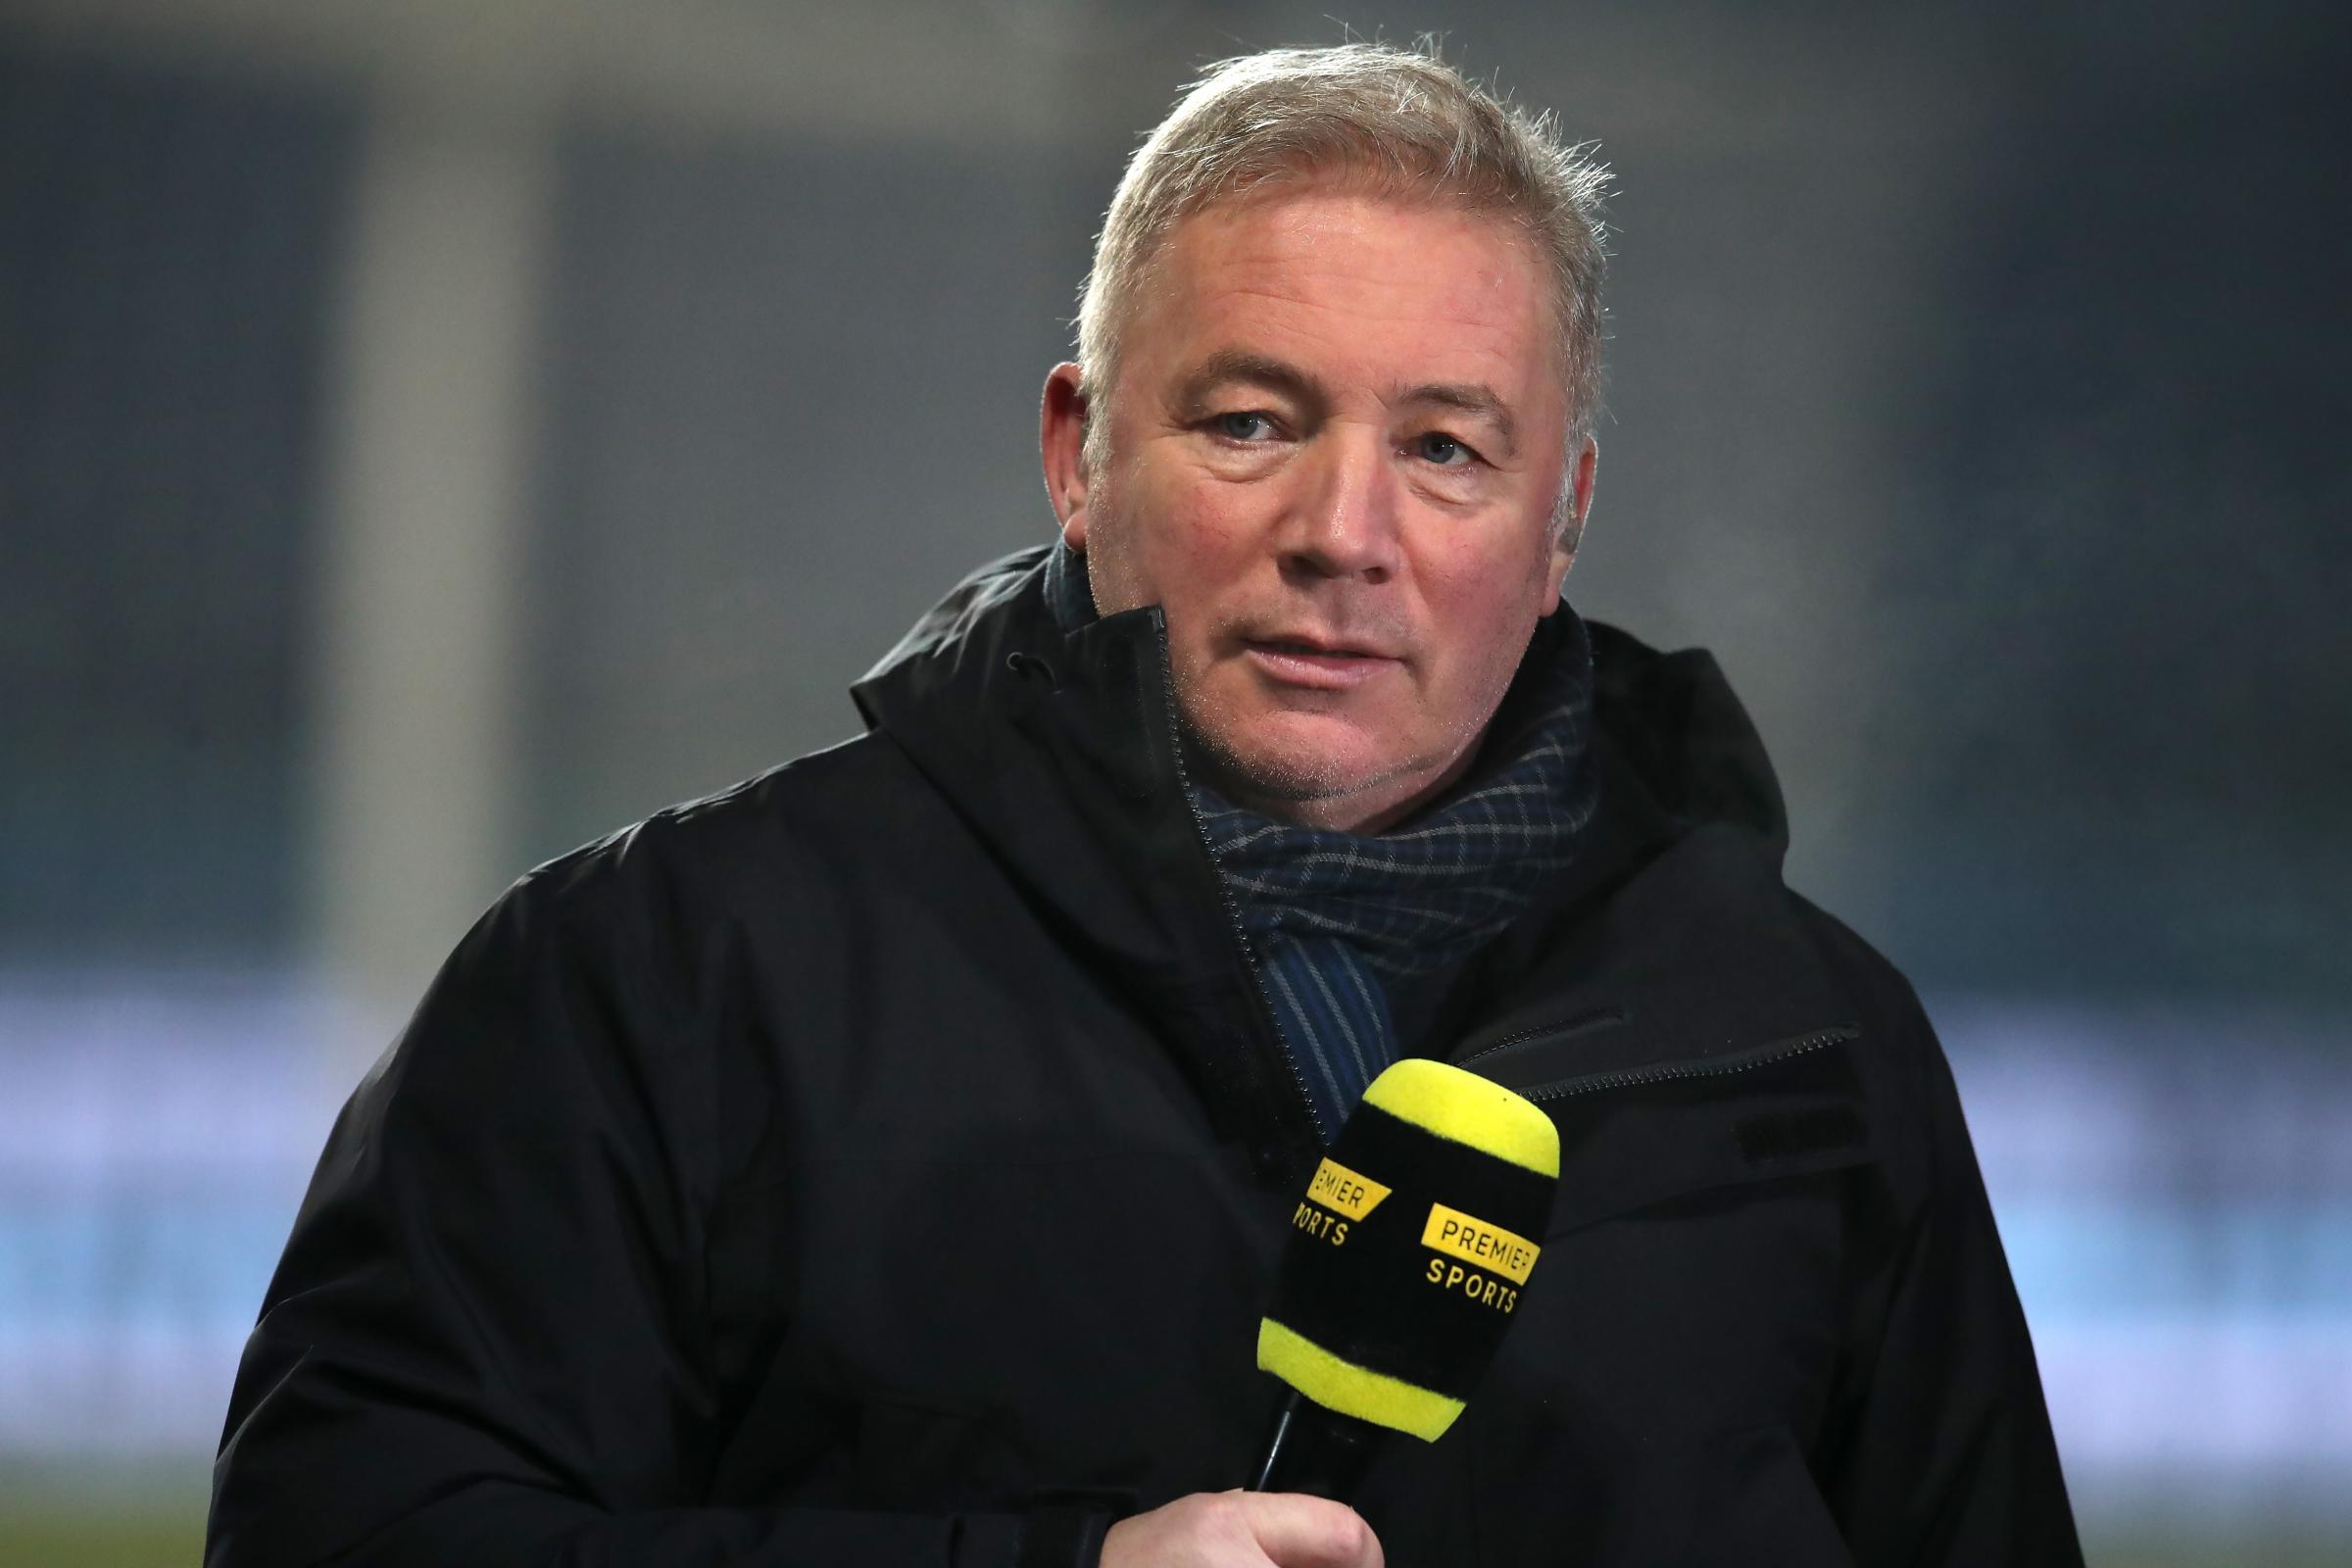 Rangers hero Ally McCoist makes defensive claim as he reacts to Malmo defeat